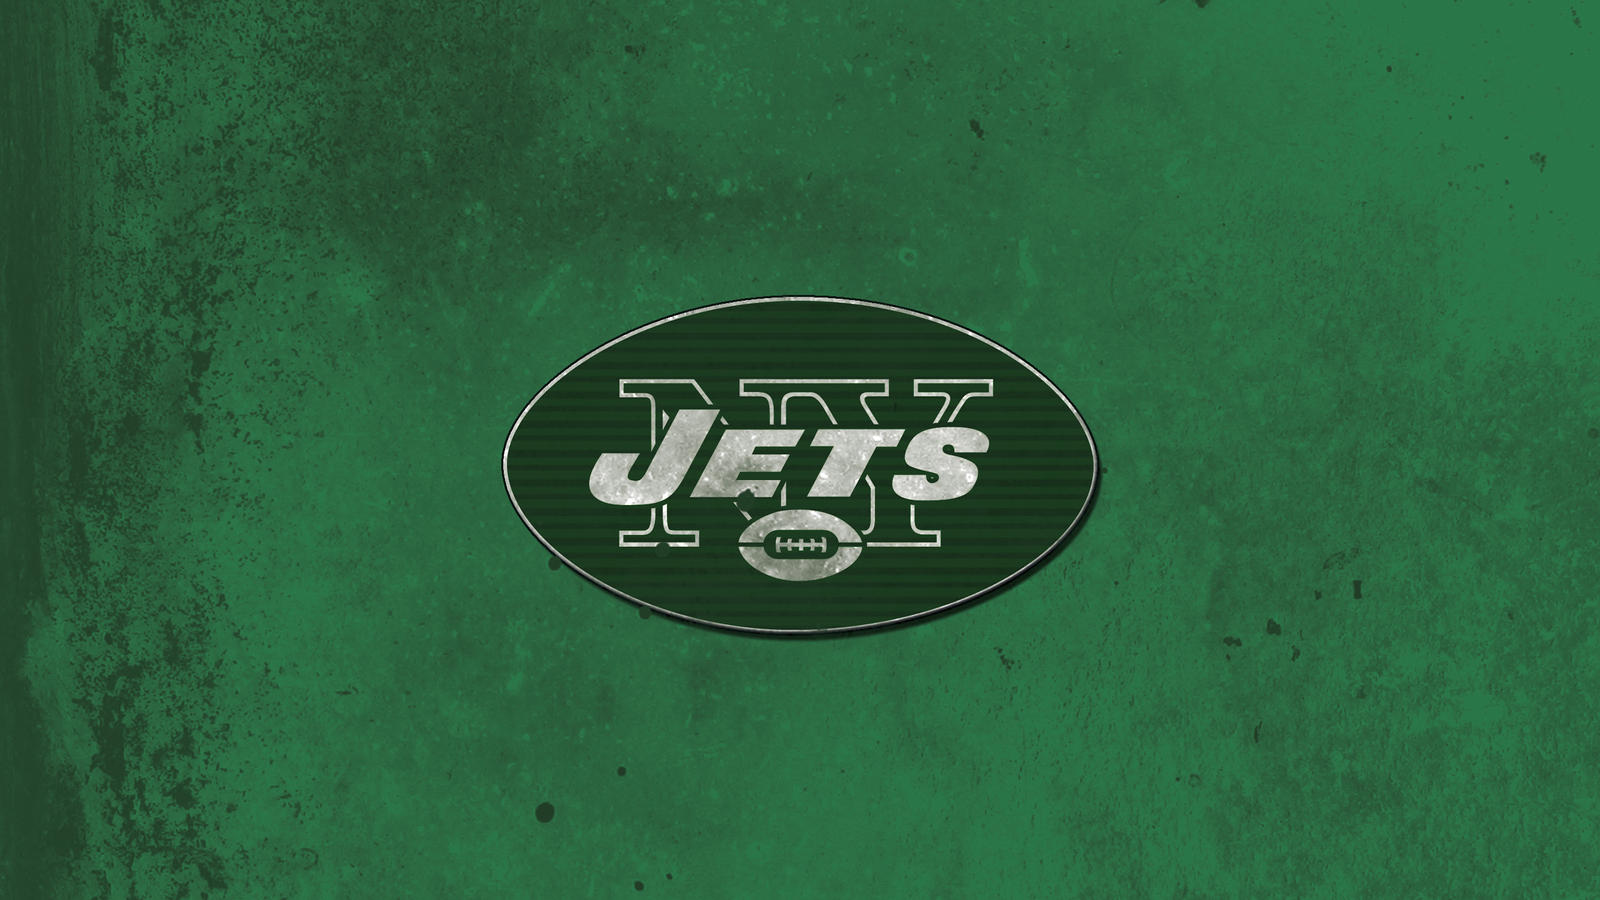 New York Jets By Beaware8 On Deviantart